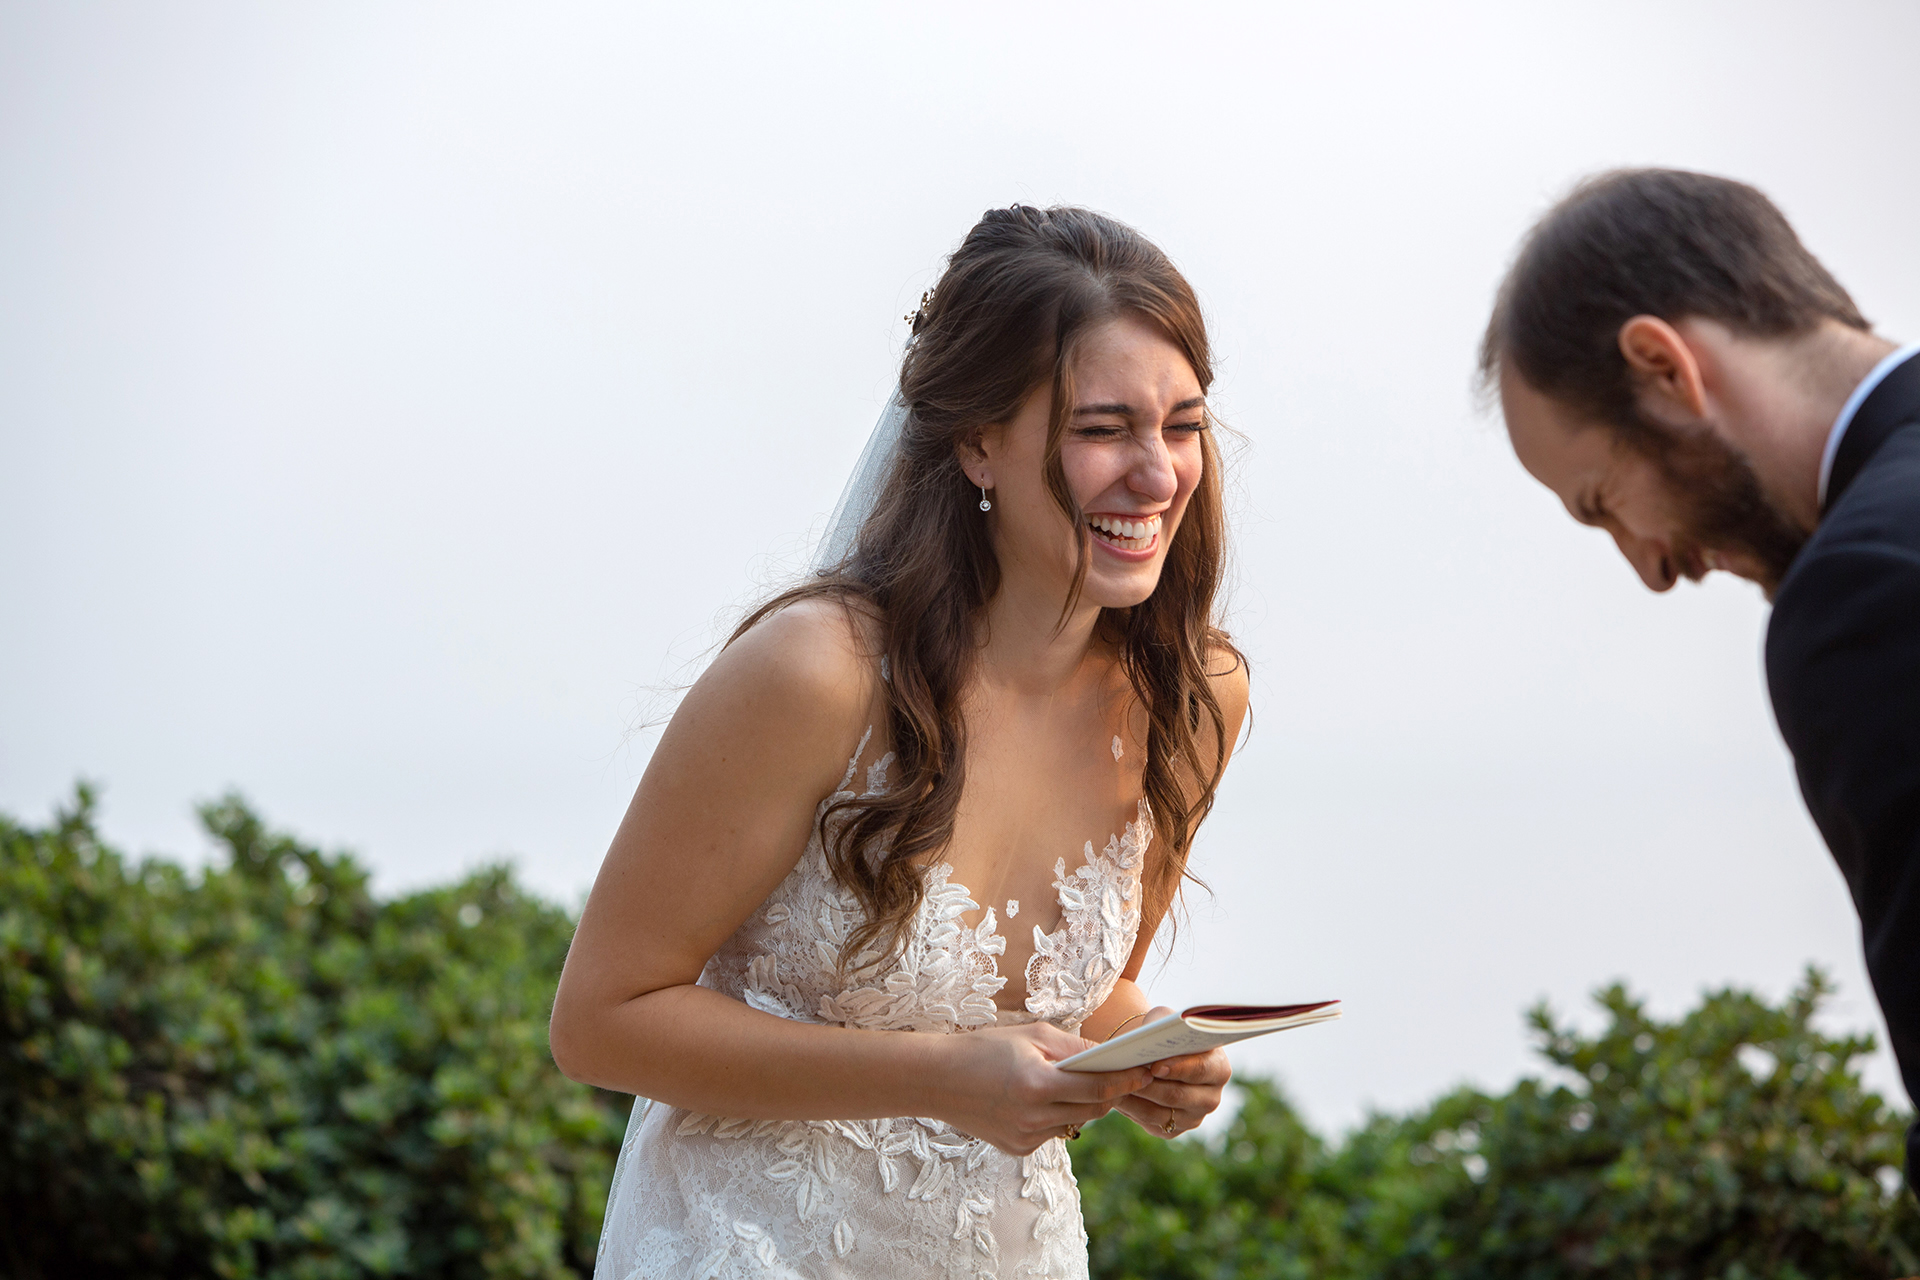 Coastal Big Sur Wedding Ceremony - Wind and Sea Photos | The couple bursts into laughter during the vow exchange